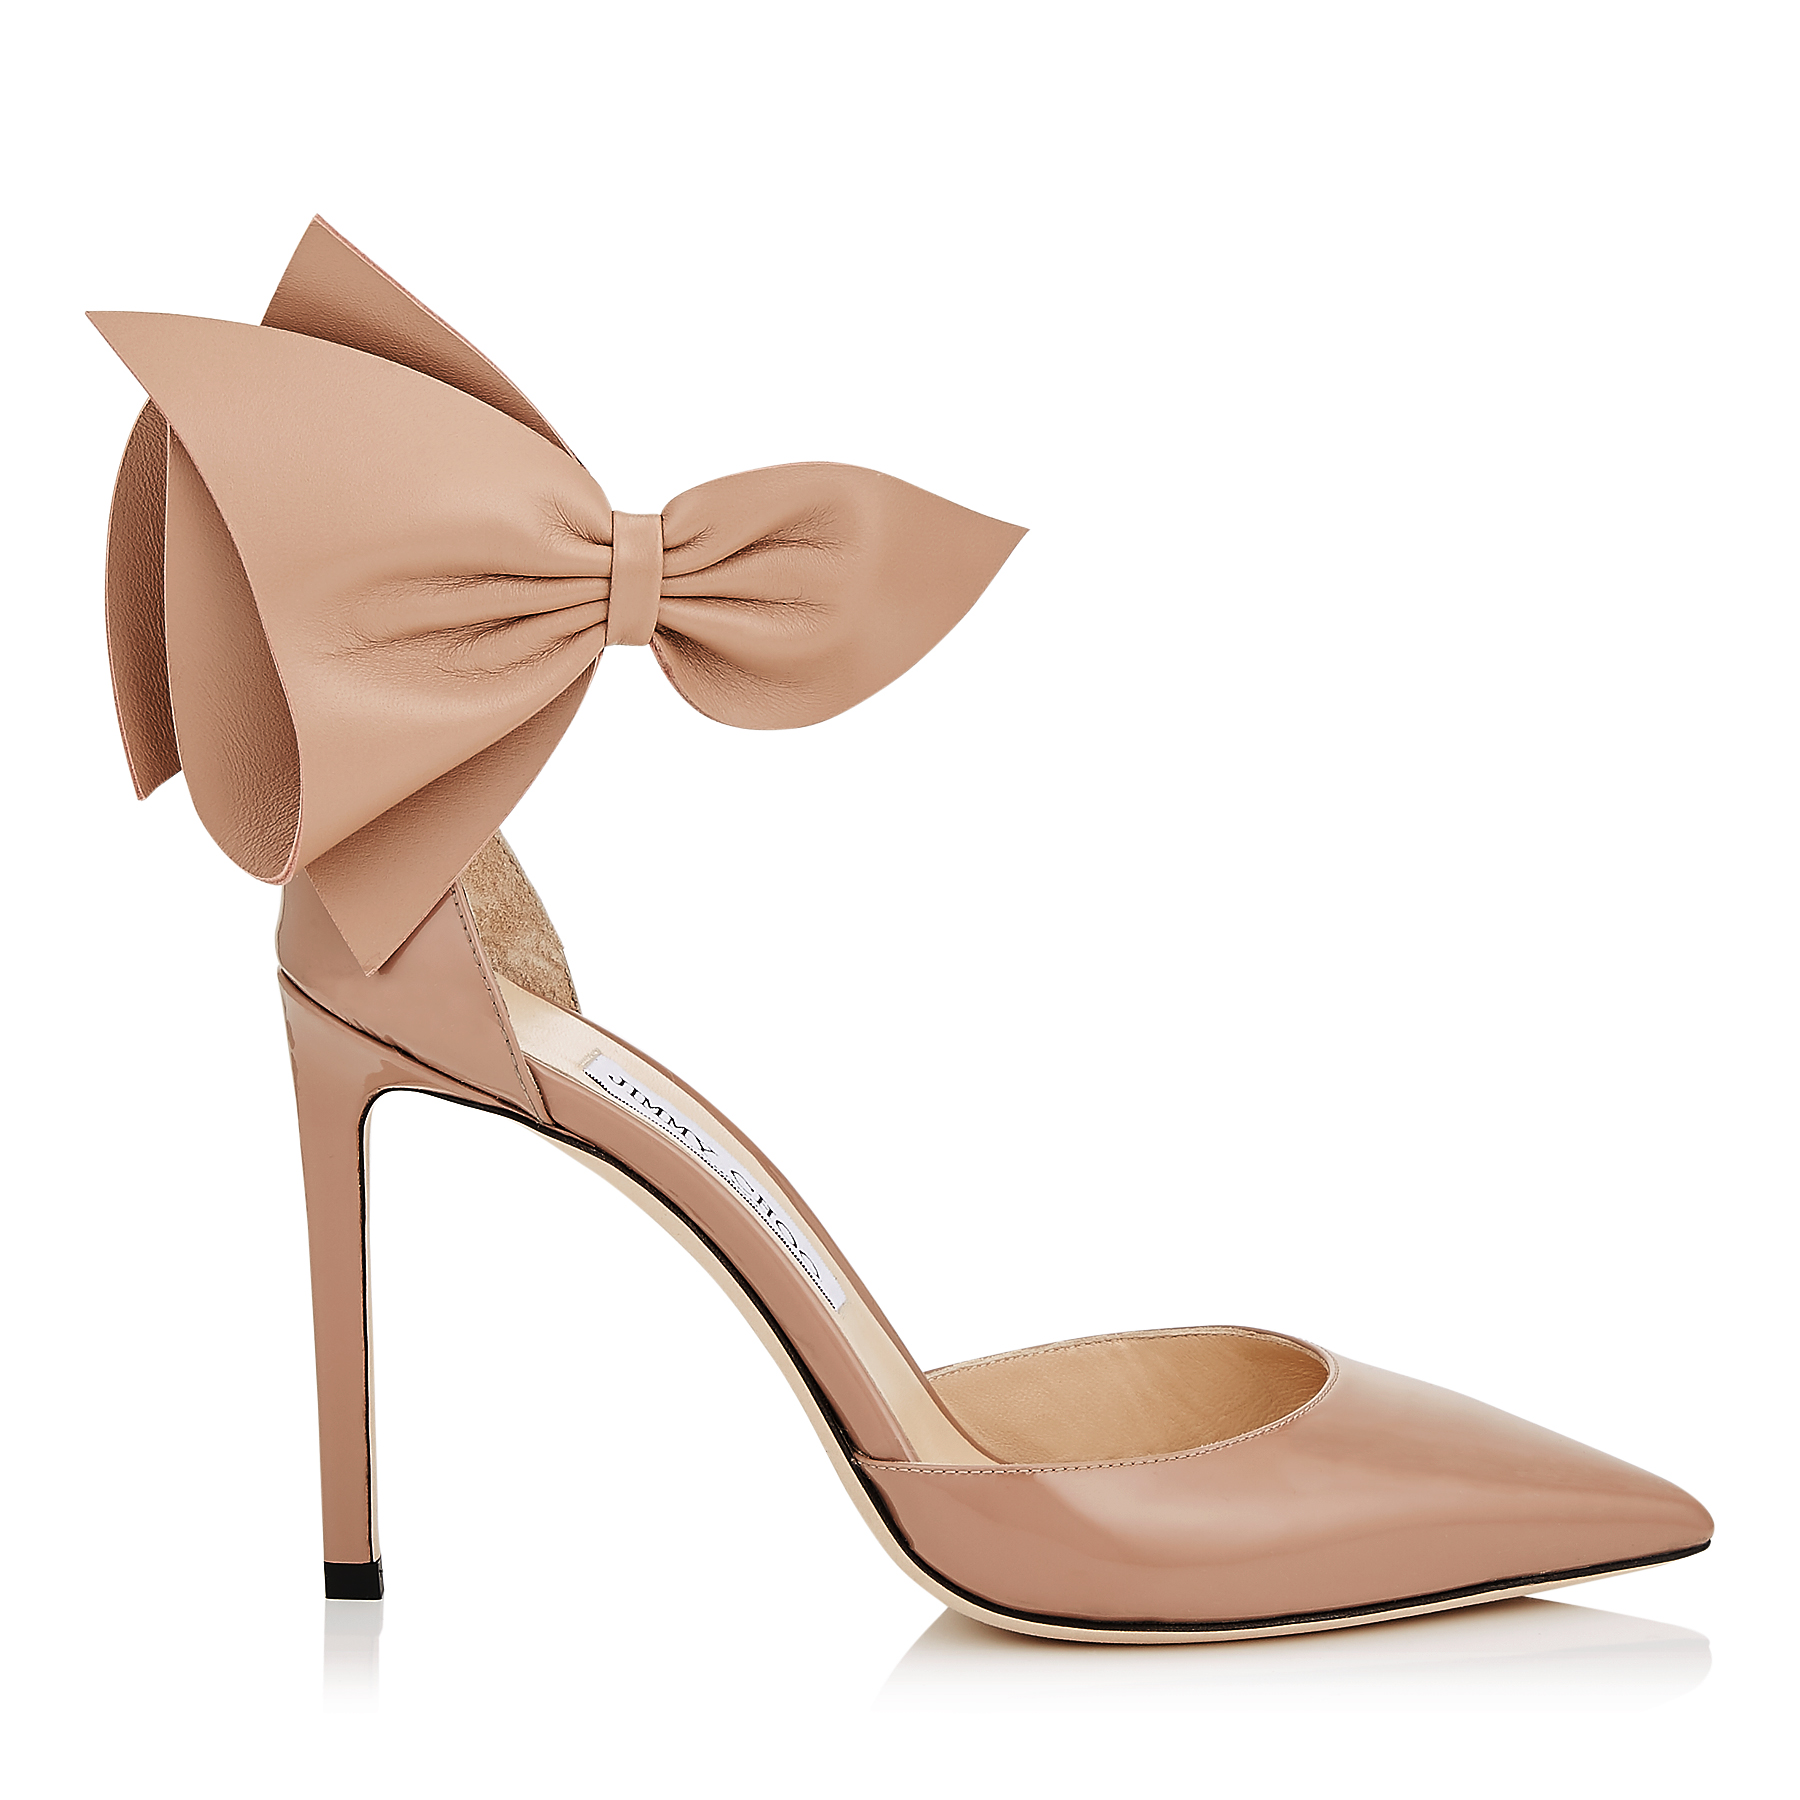 KELLEY 100 Ballet Pink Patent and Nappa Leather Pointy Toe Pumps by Jimmy Choo